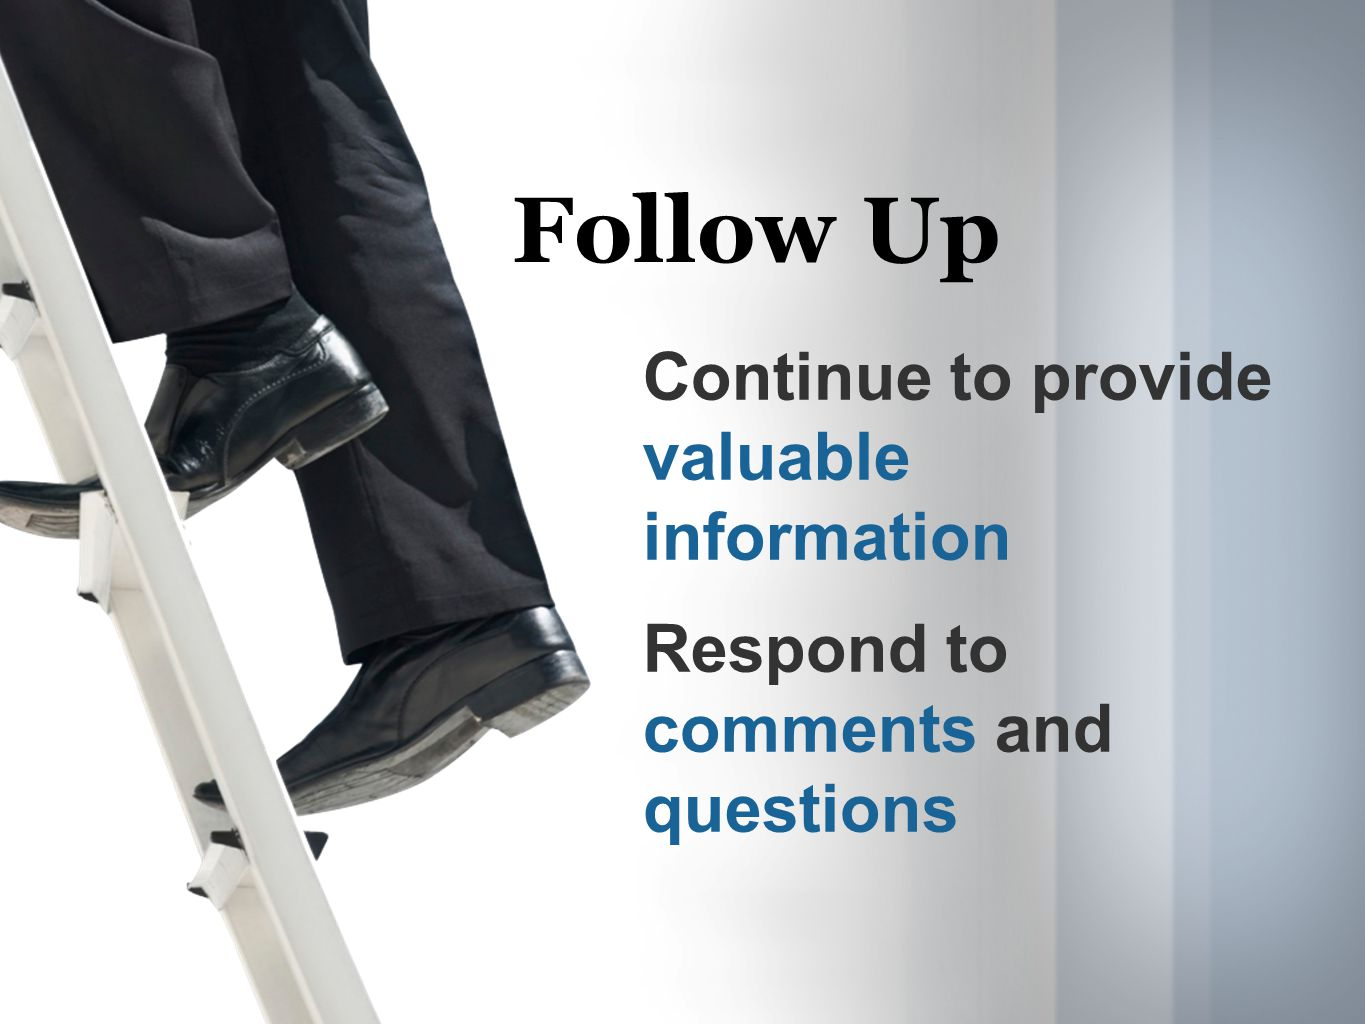 Follow Up Continue to provide valuable information Respond to comments and questions